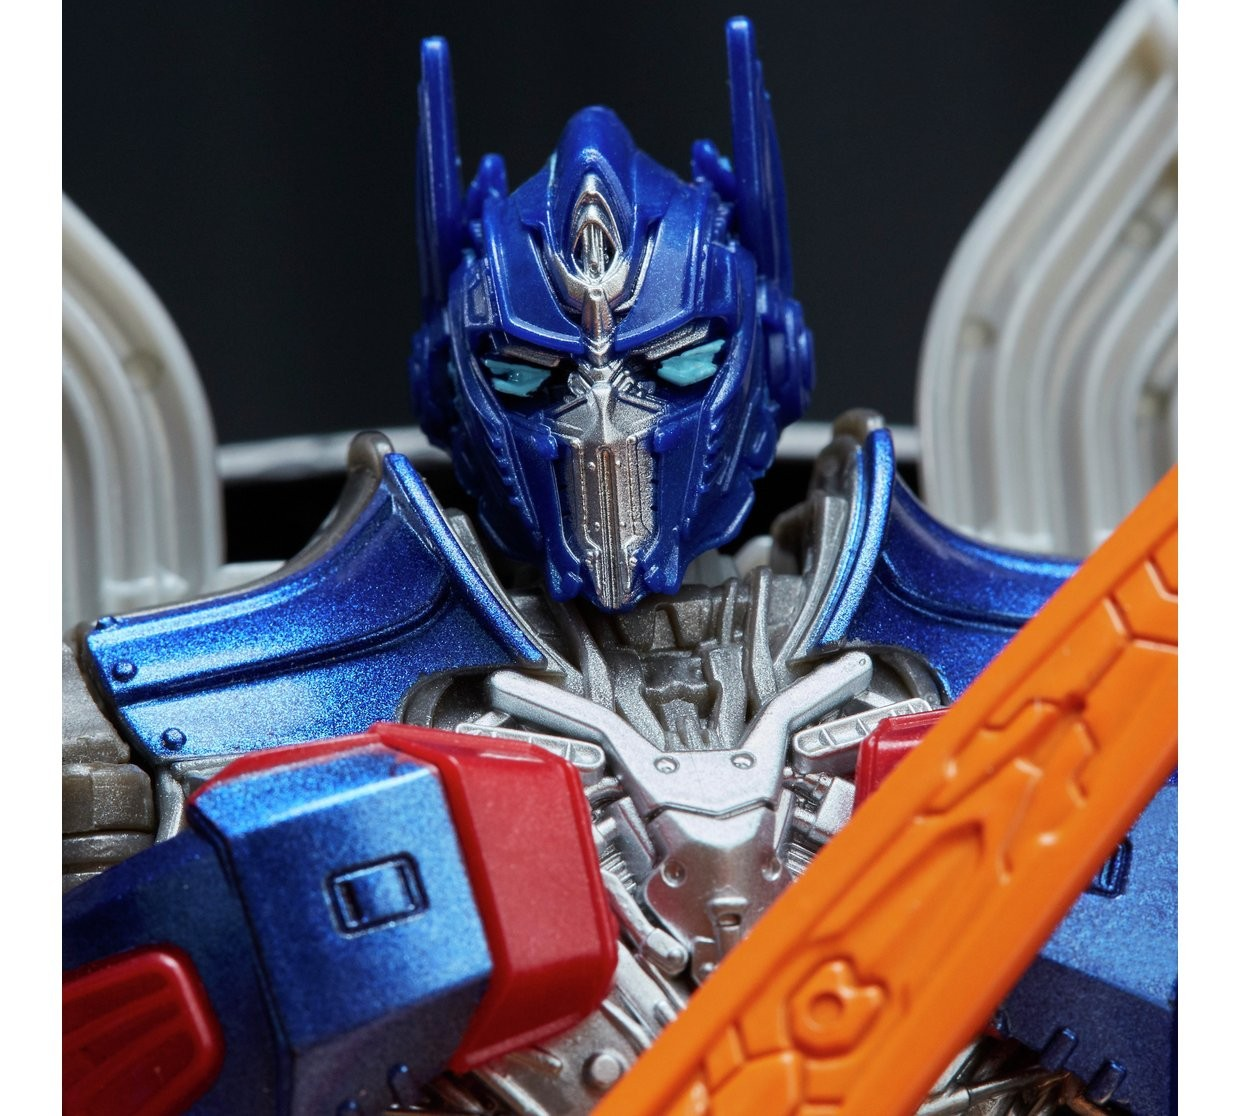 Transformers News: New Images and Listings for Voyager & 1 Step Megatron, and More Transformers: The Last Knight Toys